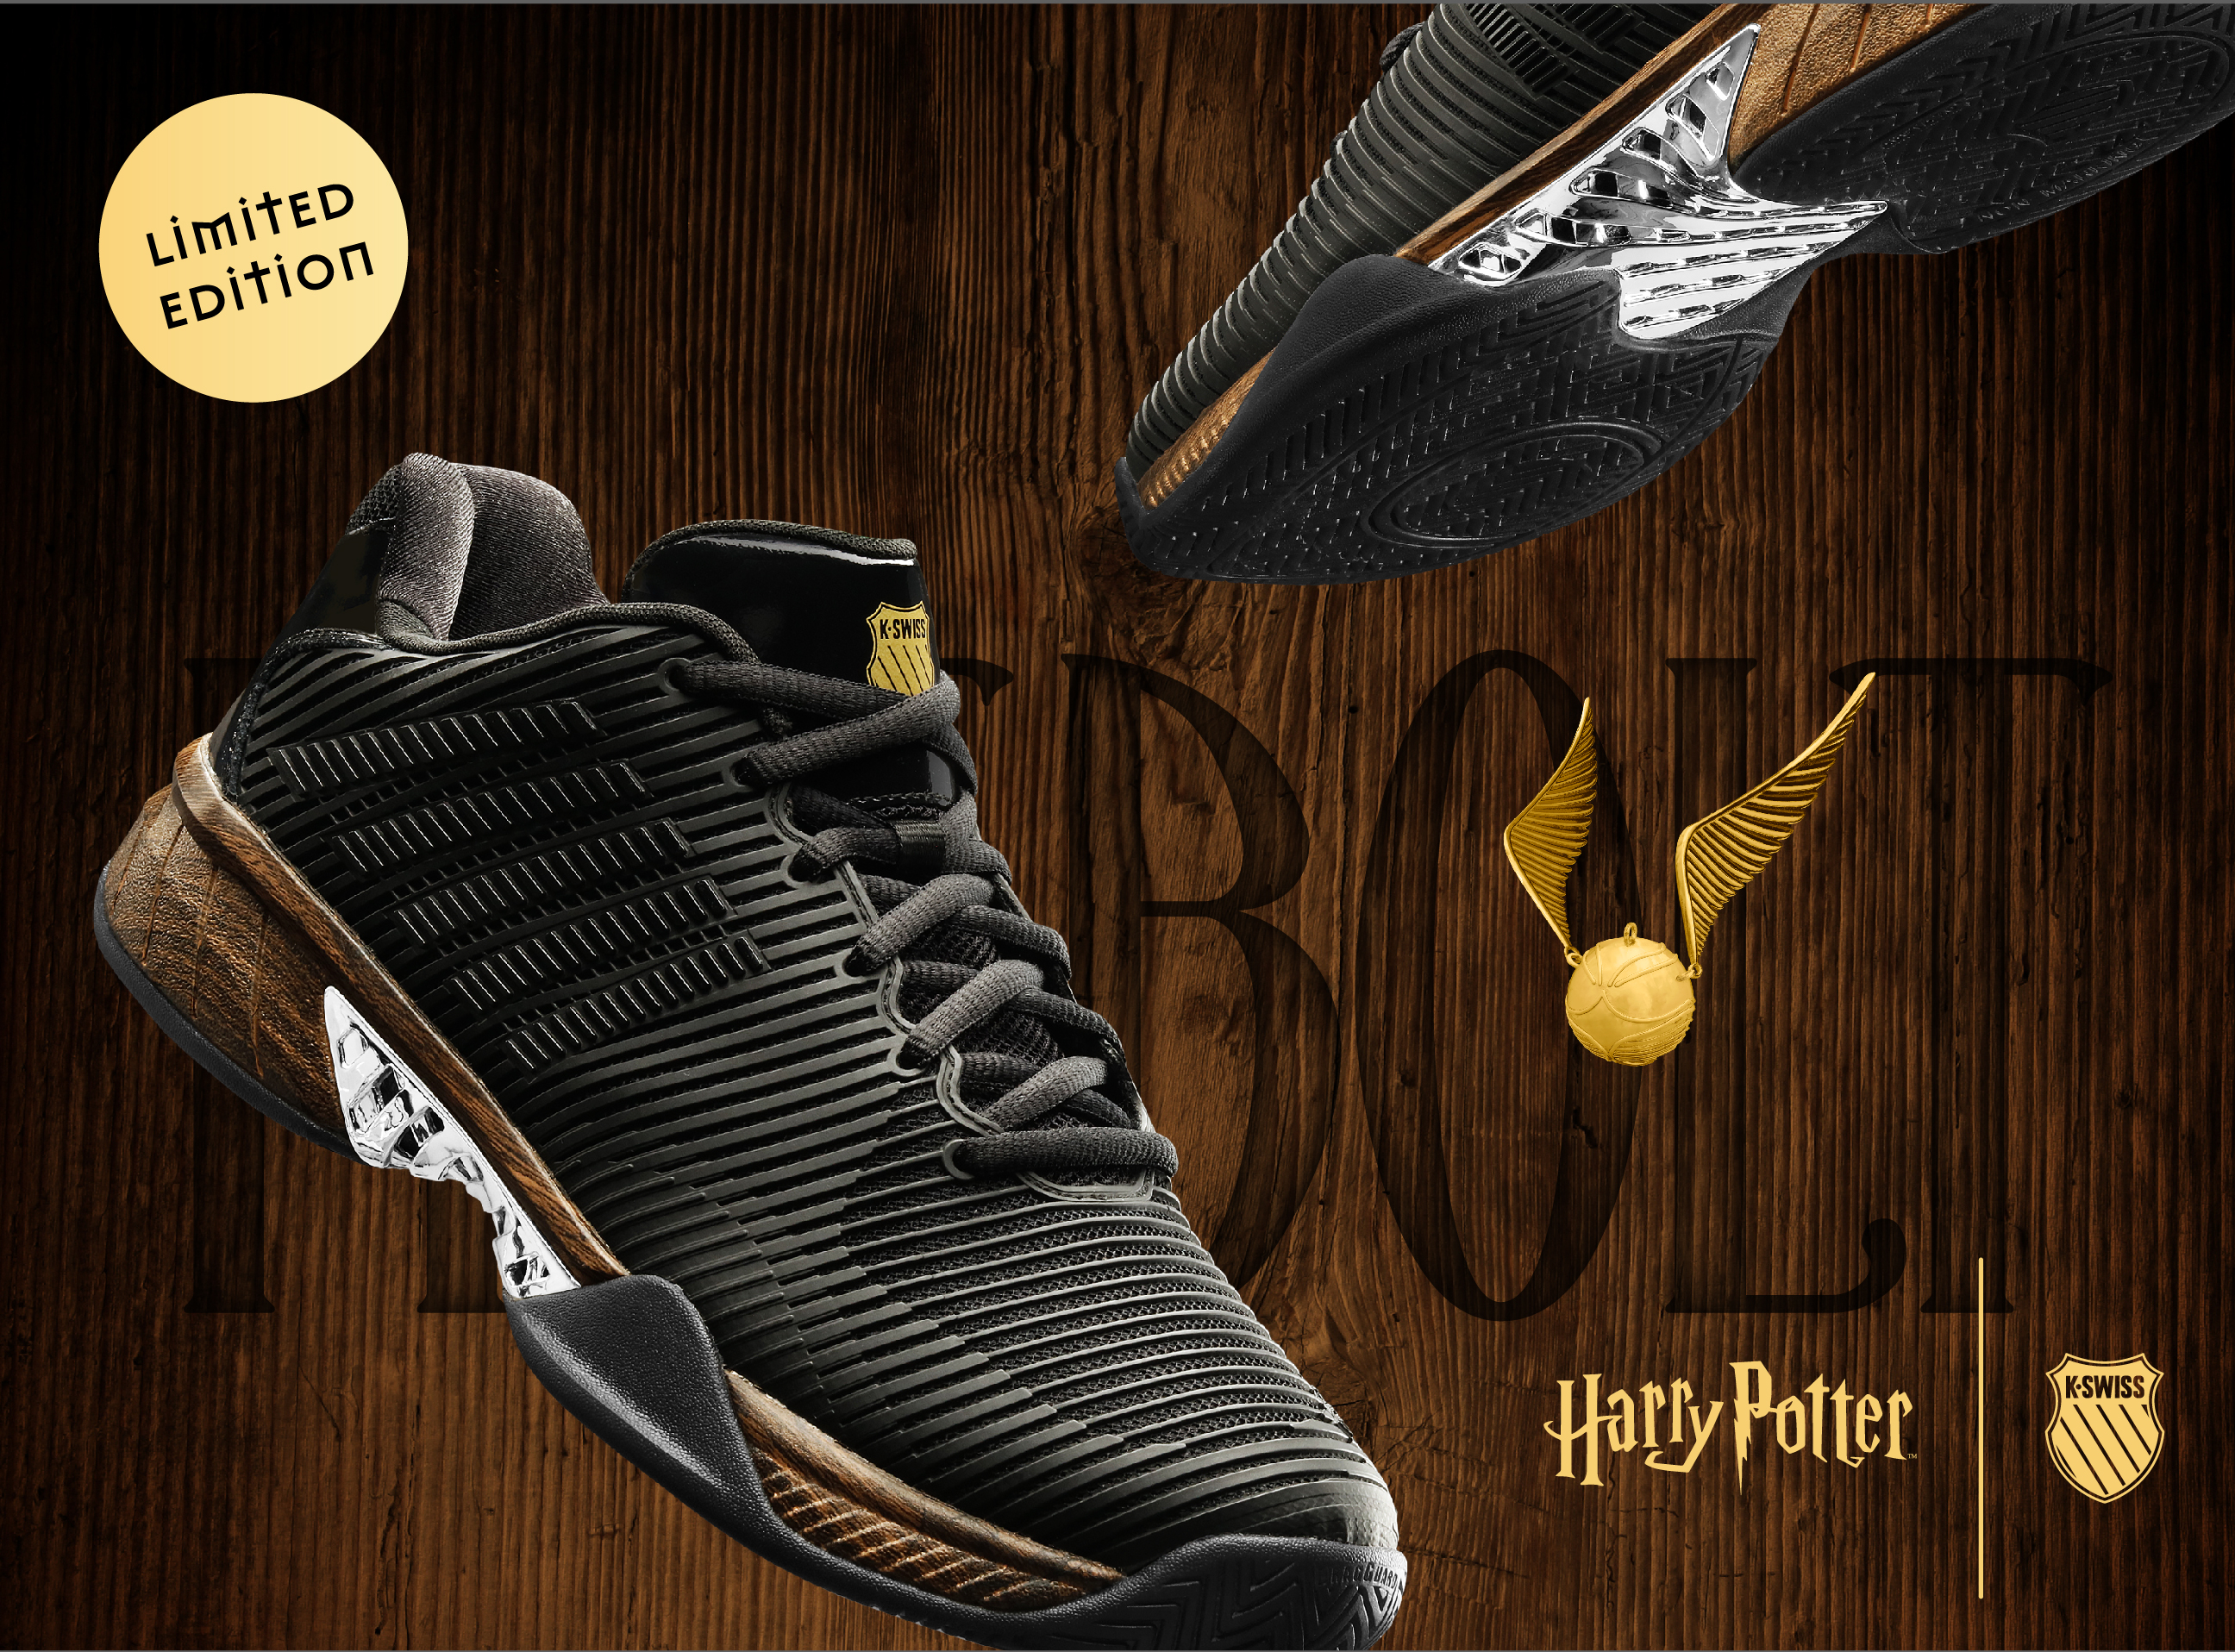 The new Harry Potter x K-Swiss shoes